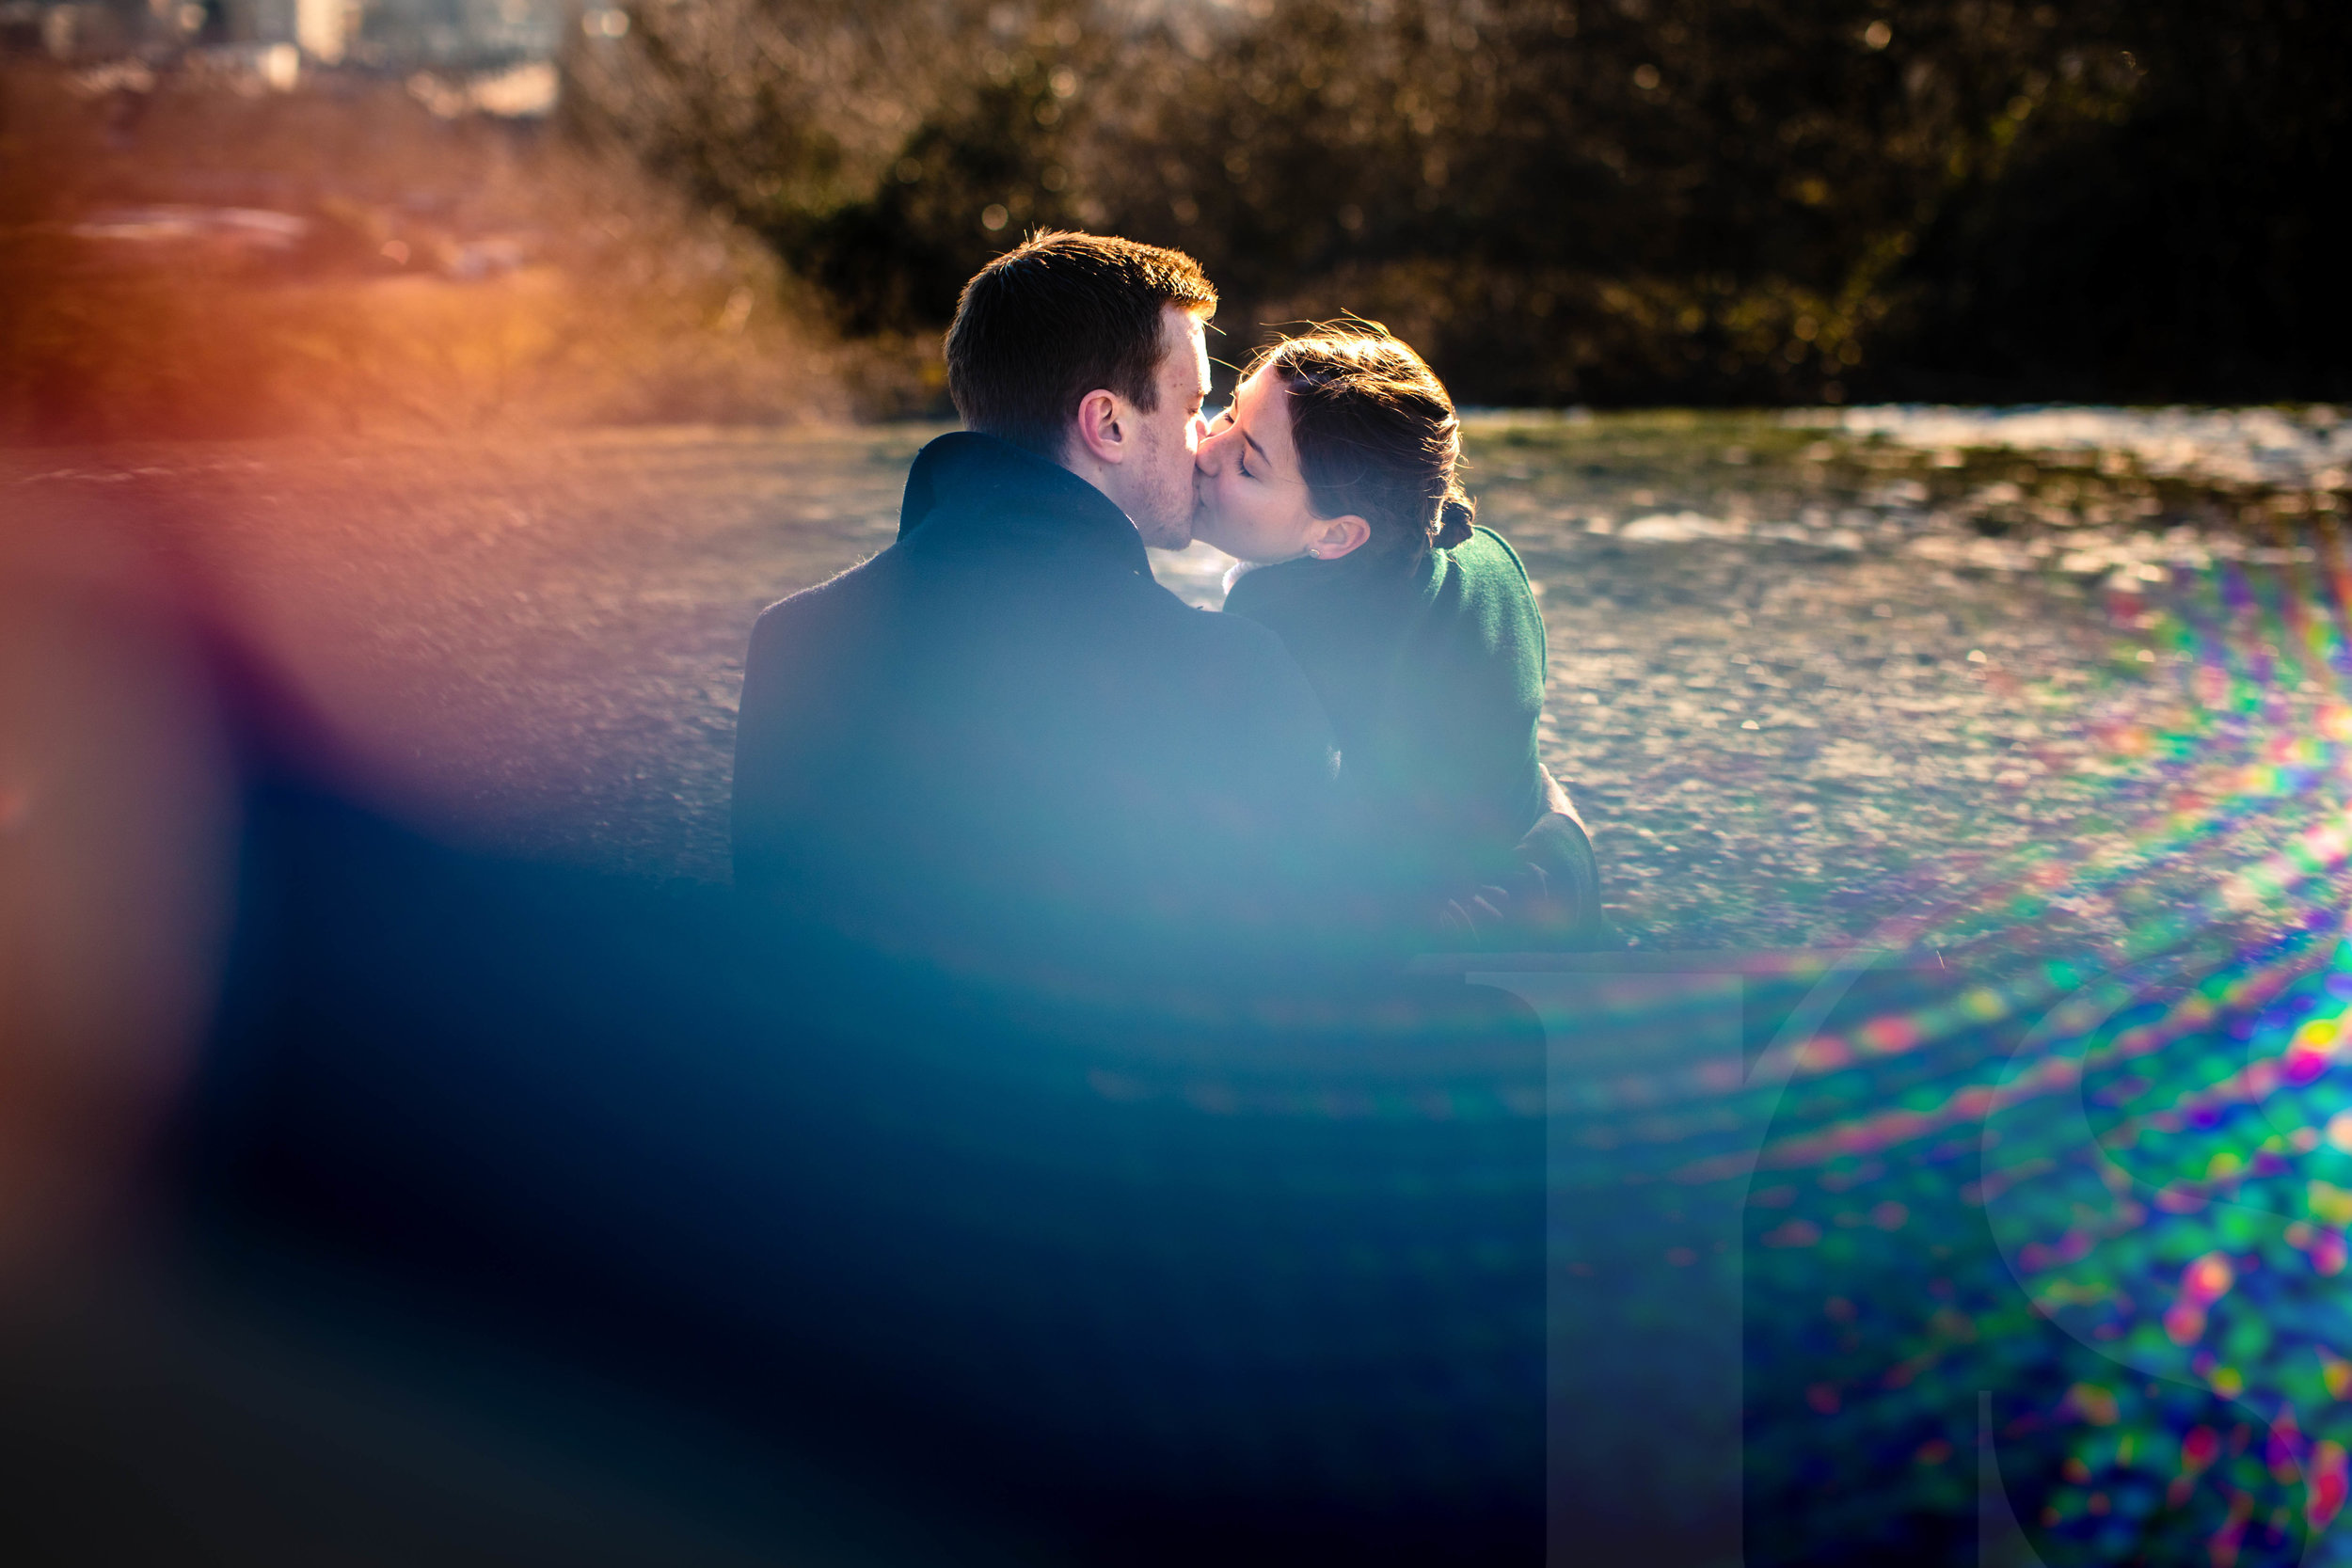 hampstead-heath-engagement-photography-16.jpg